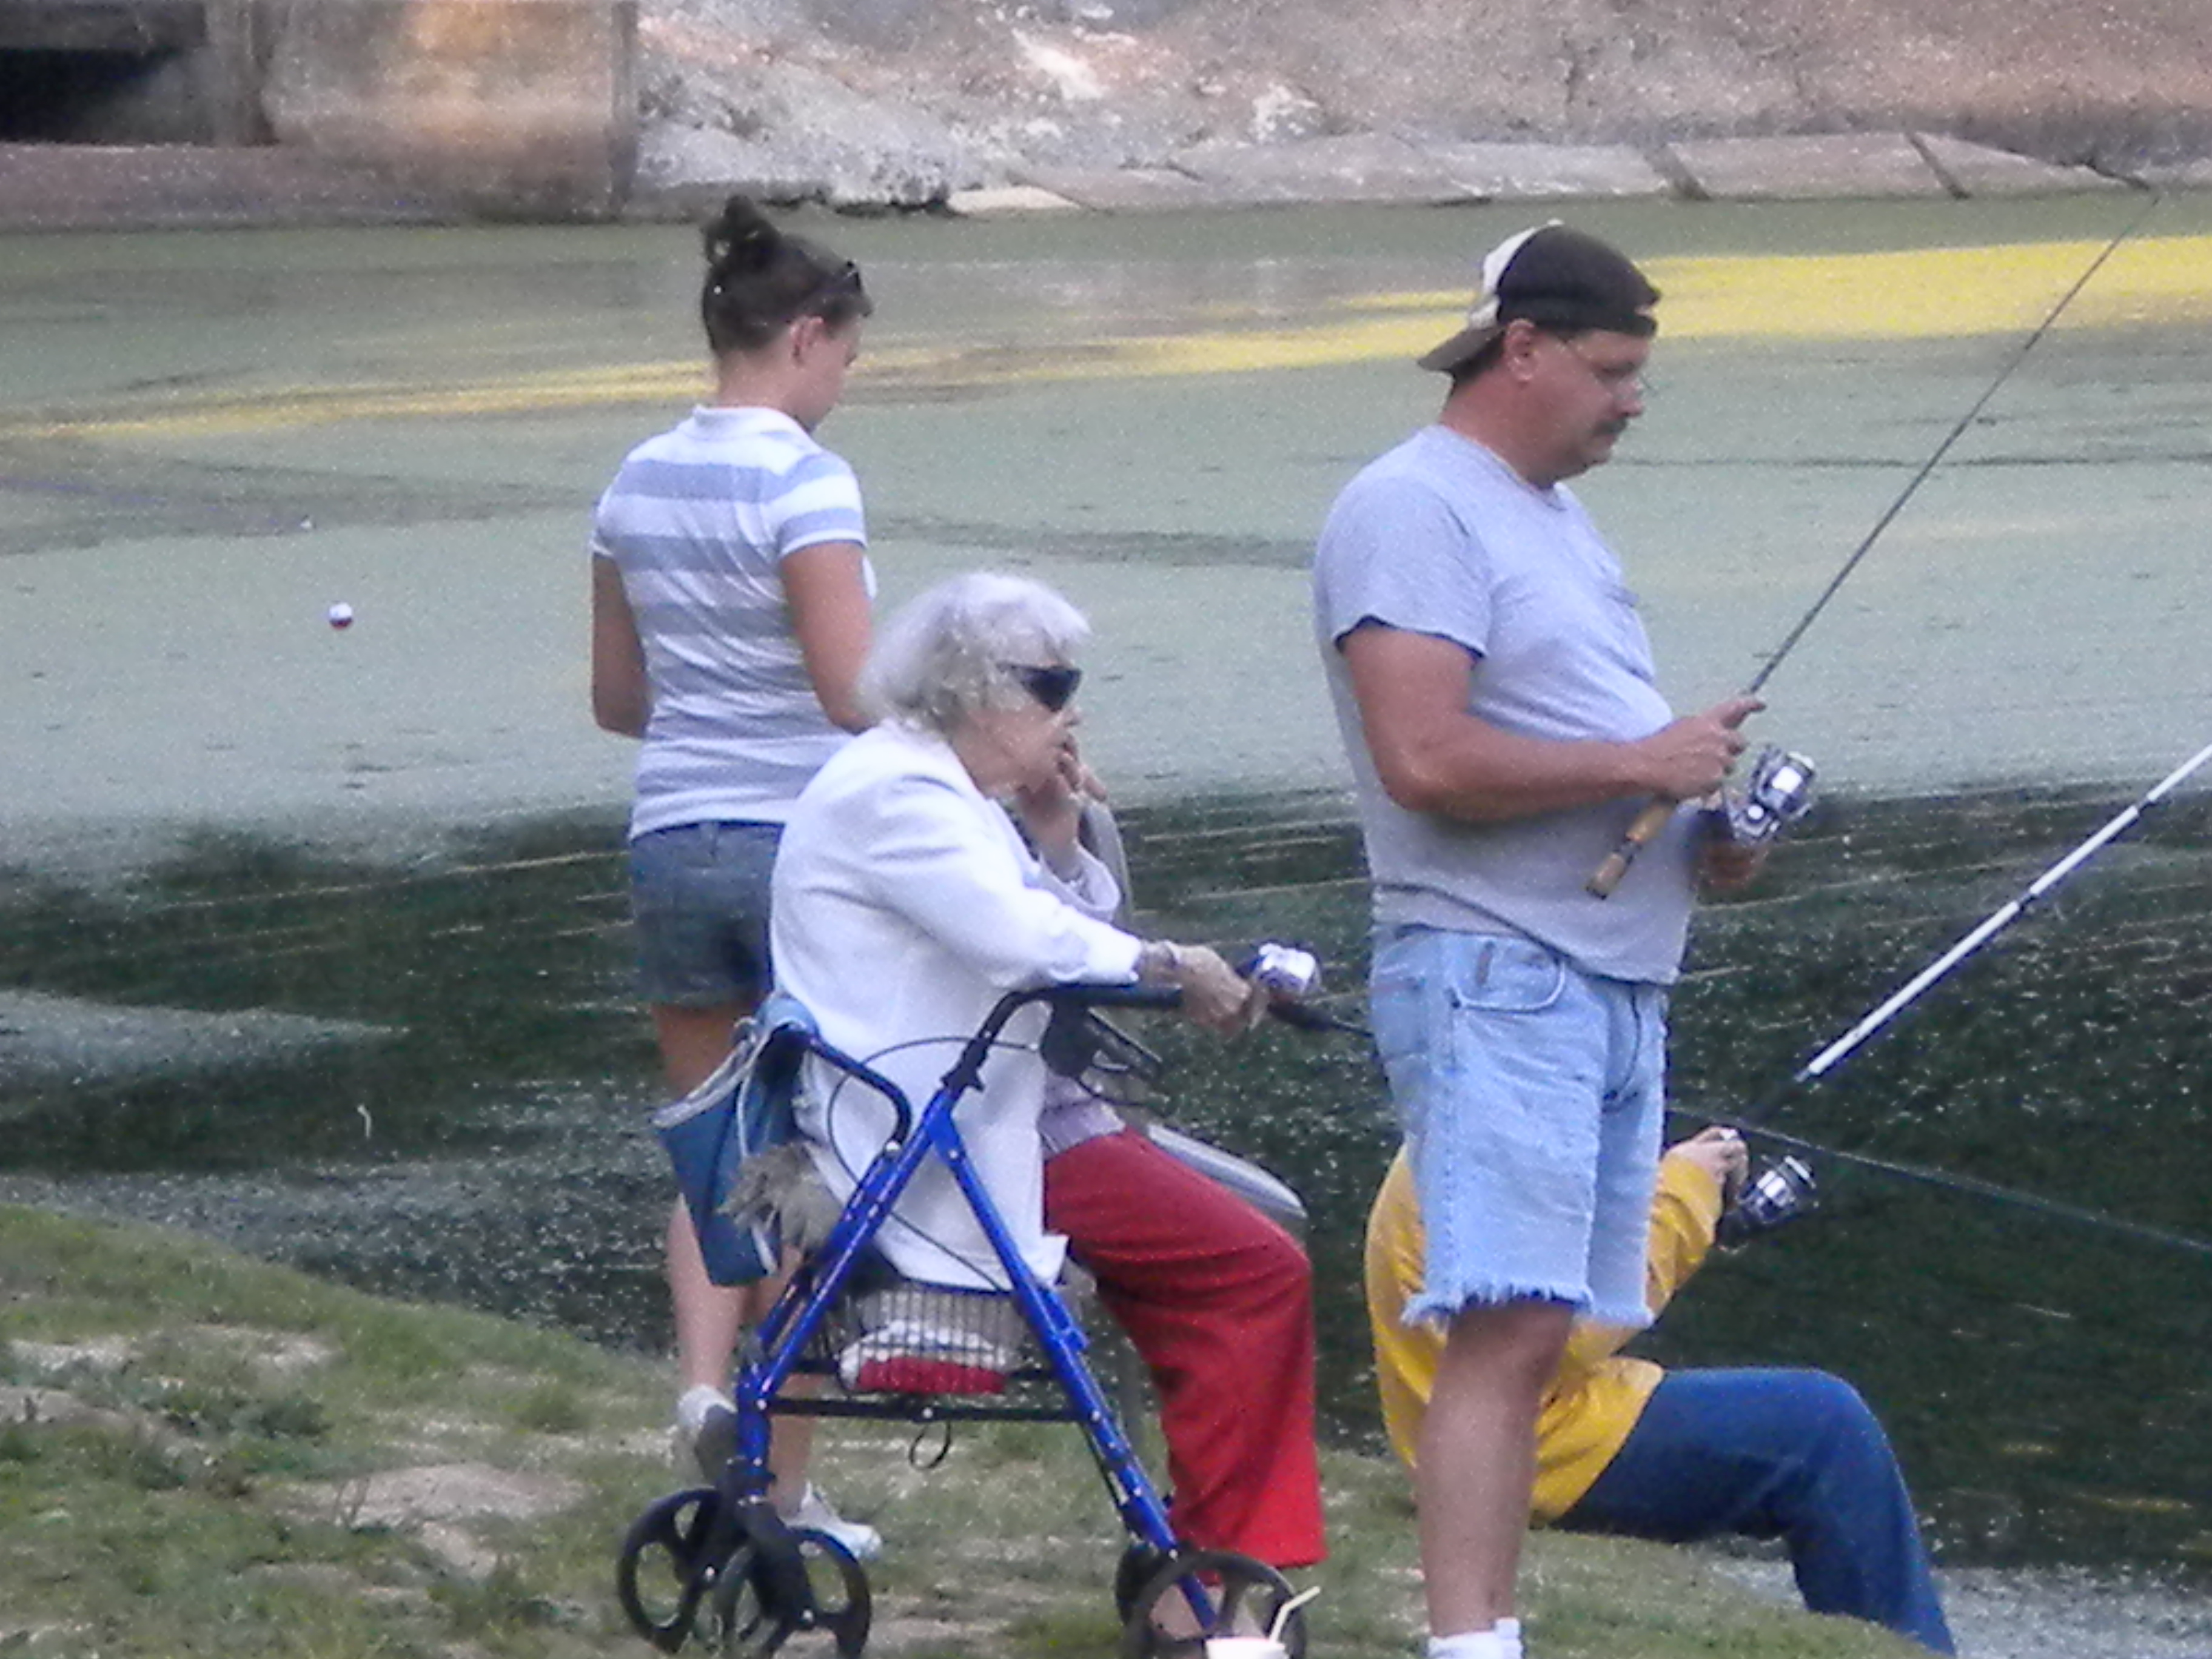 An elderly woman, a young girl, a middle aged man, and a young person fishing off the shore.